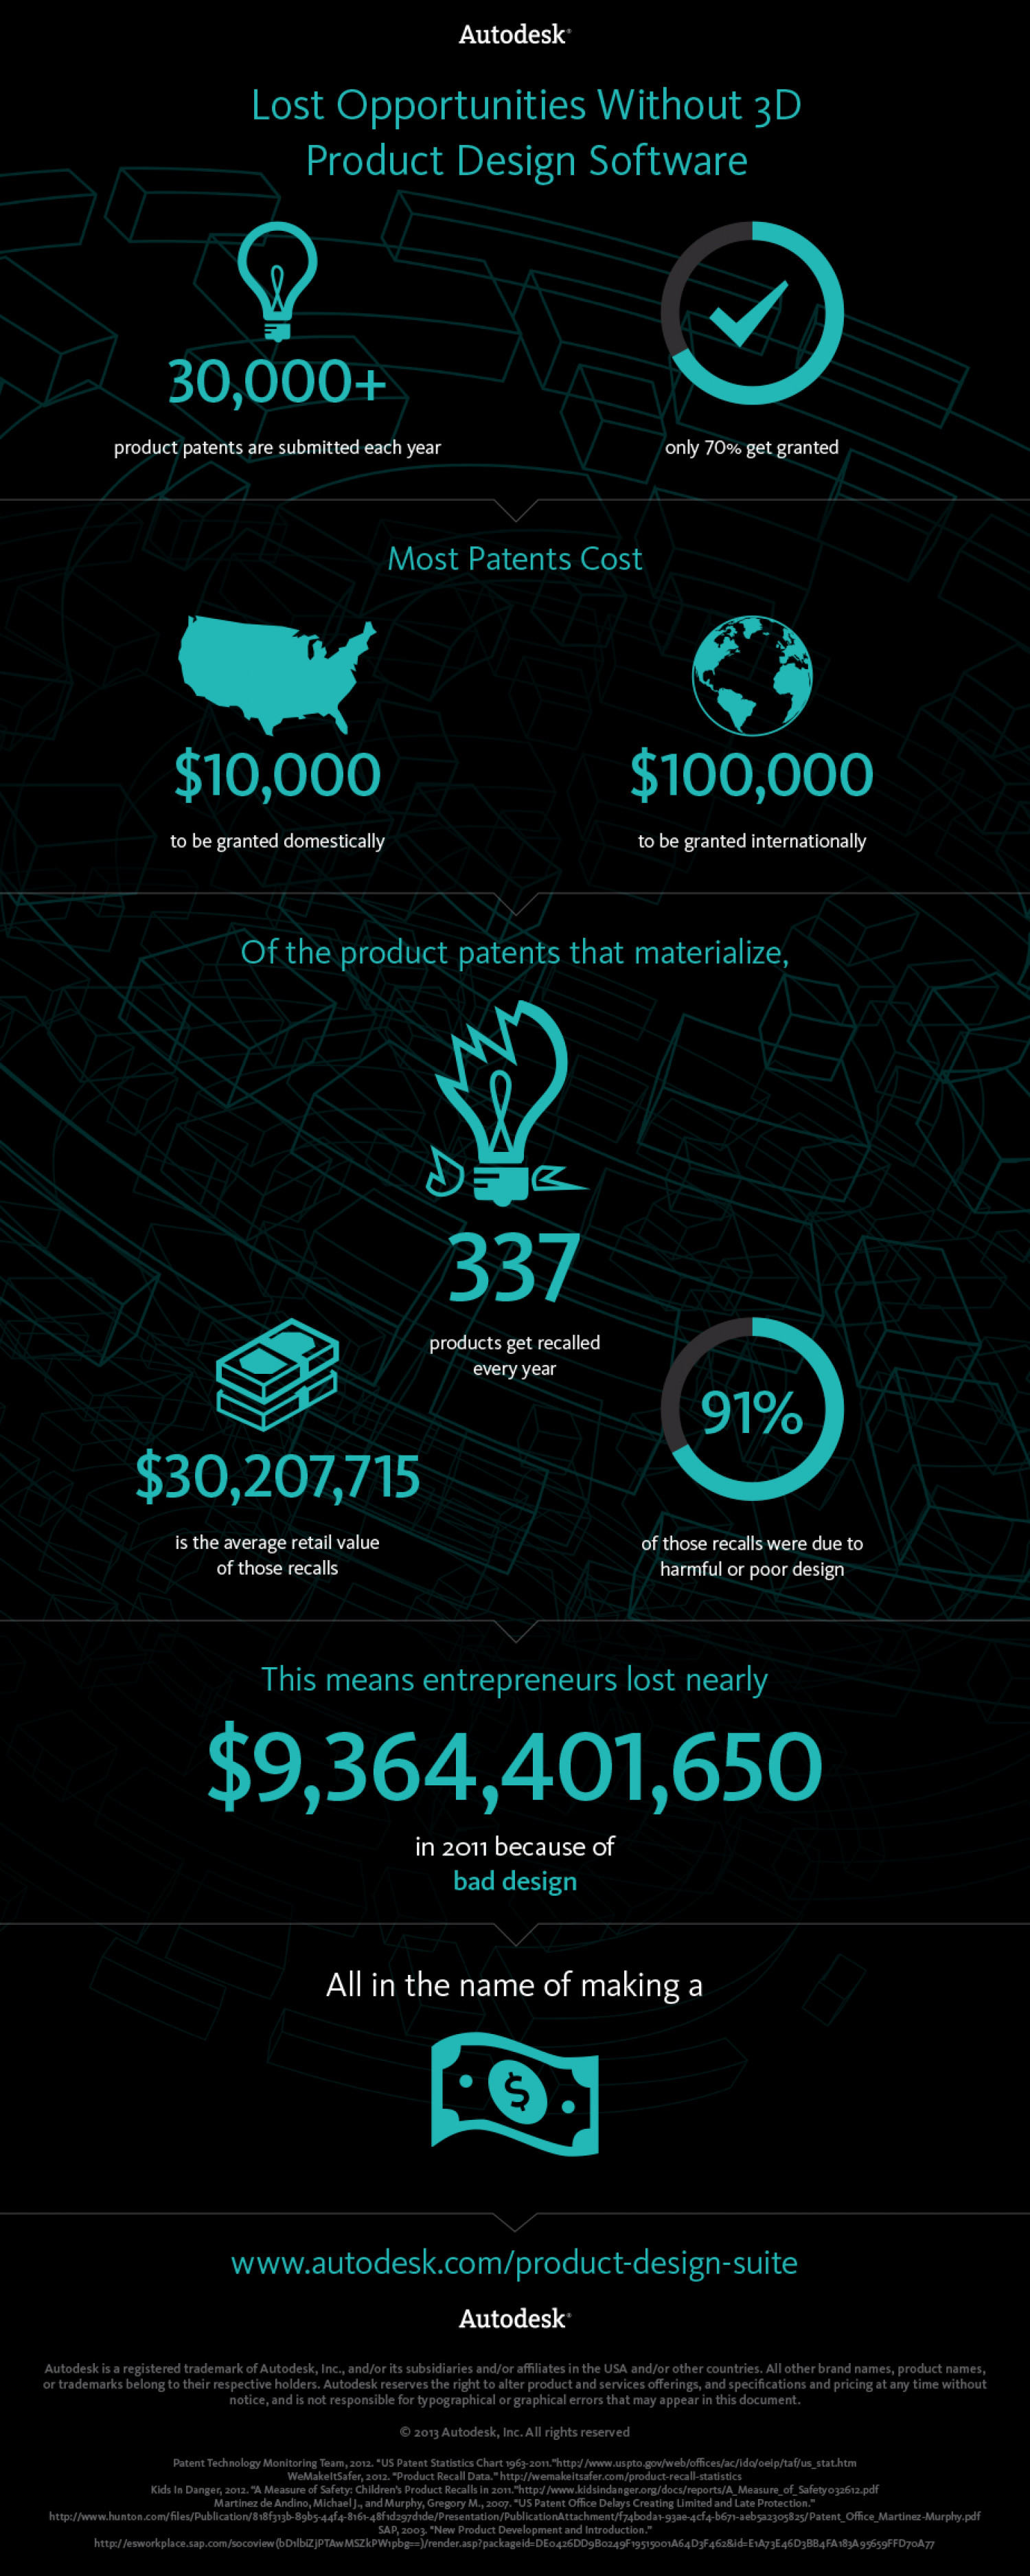 Lost Opportunities Without 3D Product Design Software Infographic